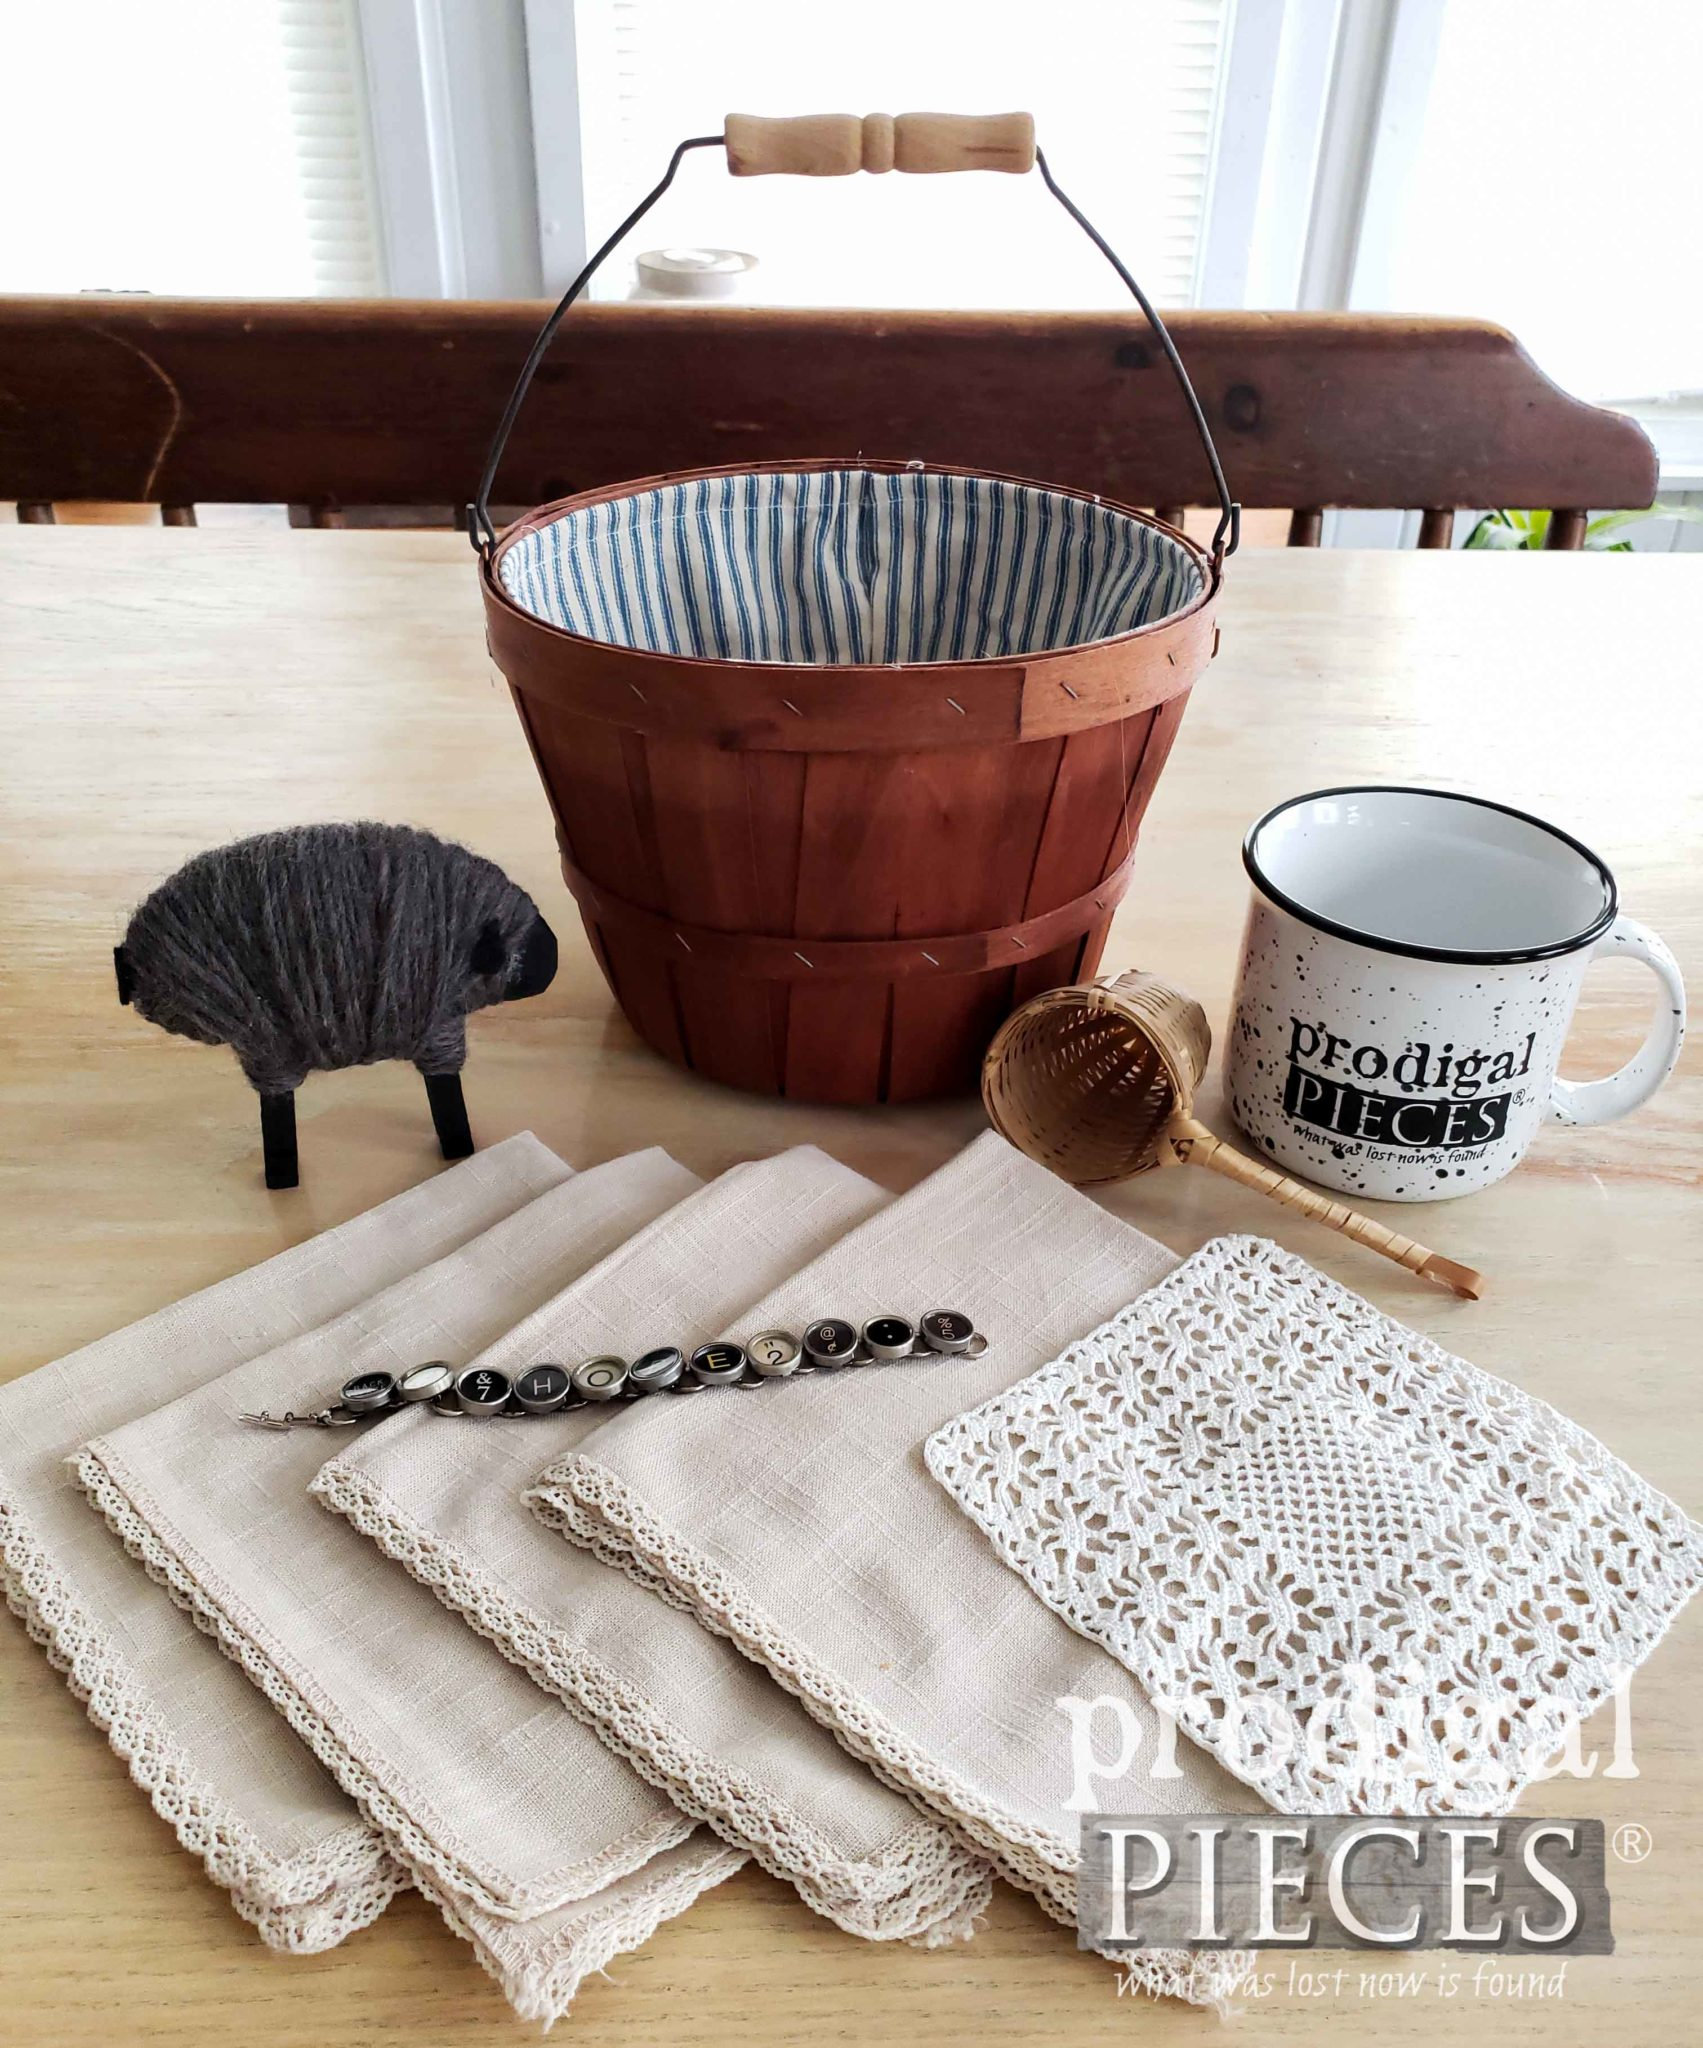 Mother's Day Gift Basket Giveaway from Larissa of Prodigal Pieces | prodigalpieces.com #prodigalpieces #mothersday #giveaway #farmhouse #home #homedecor